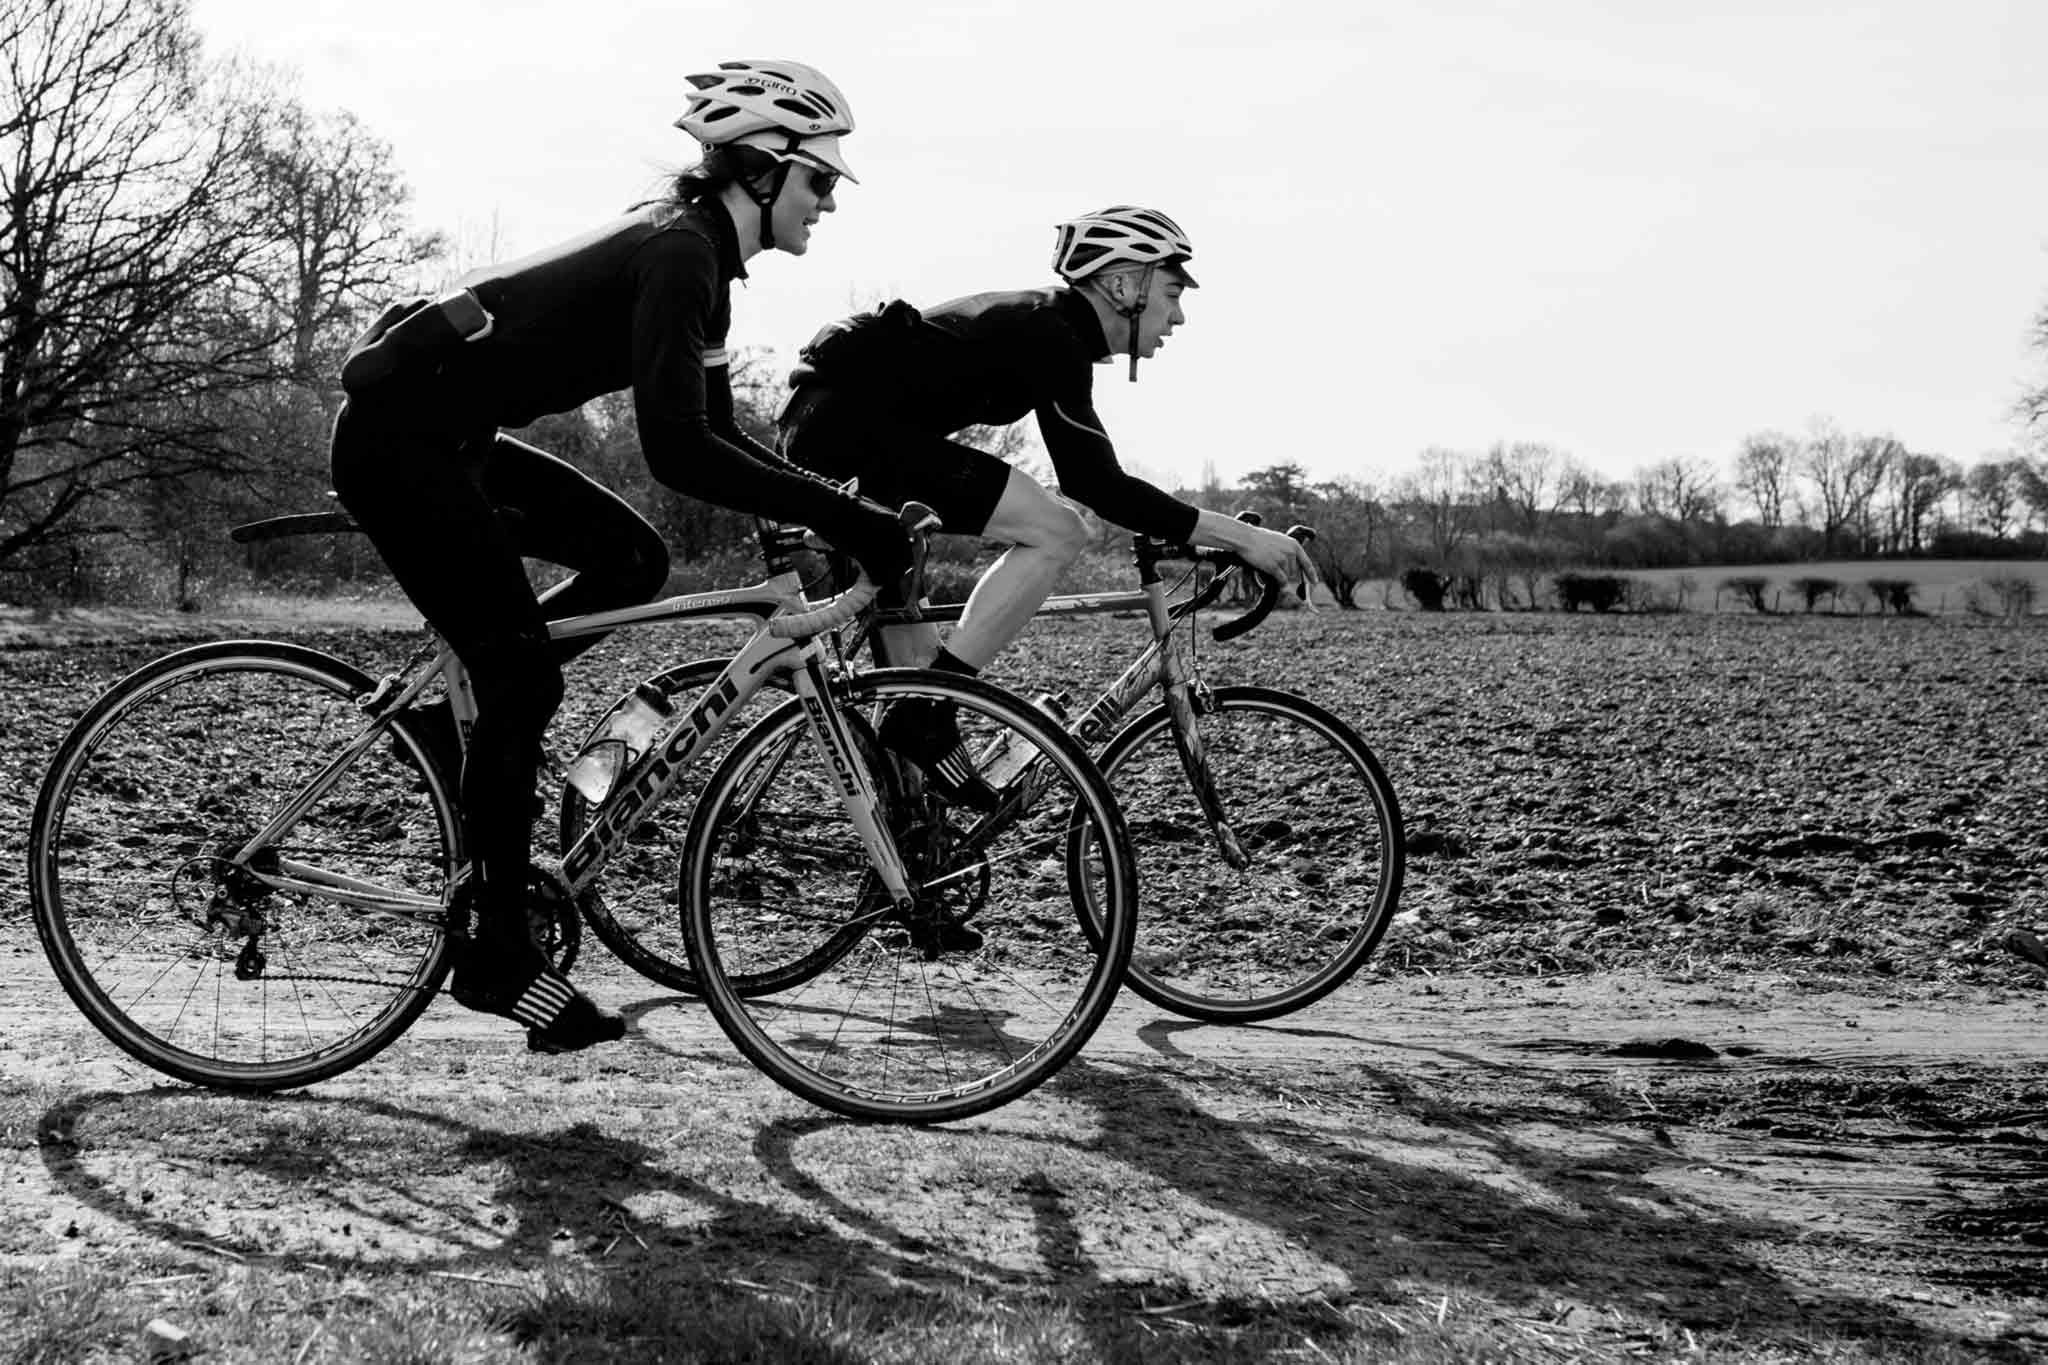 Rapha | Puddles, punctures and the pub